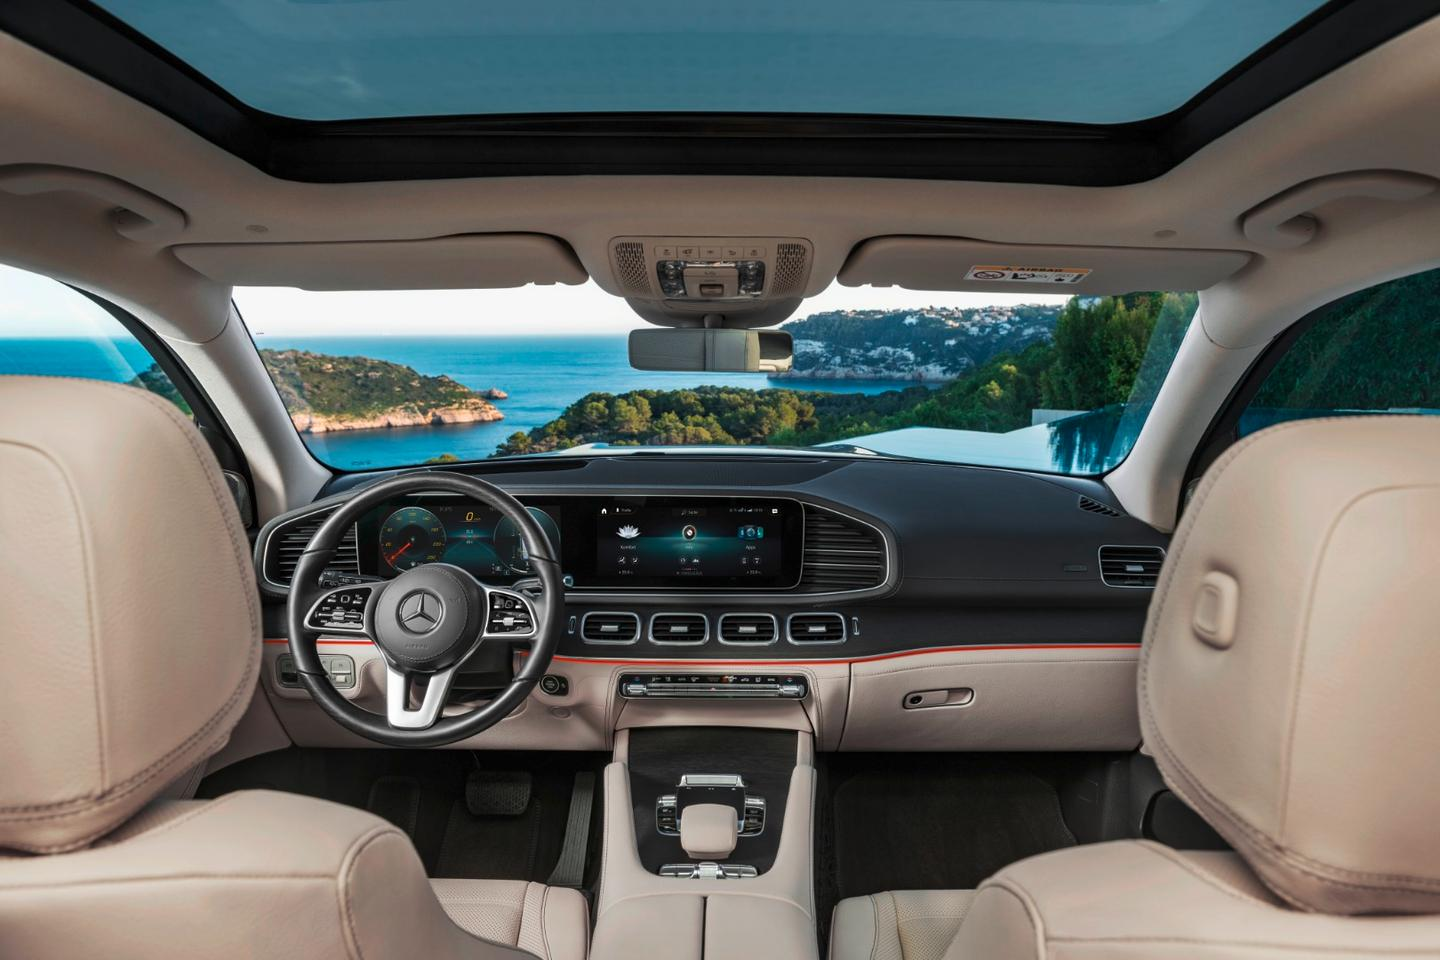 The GLS interior: a bit nice